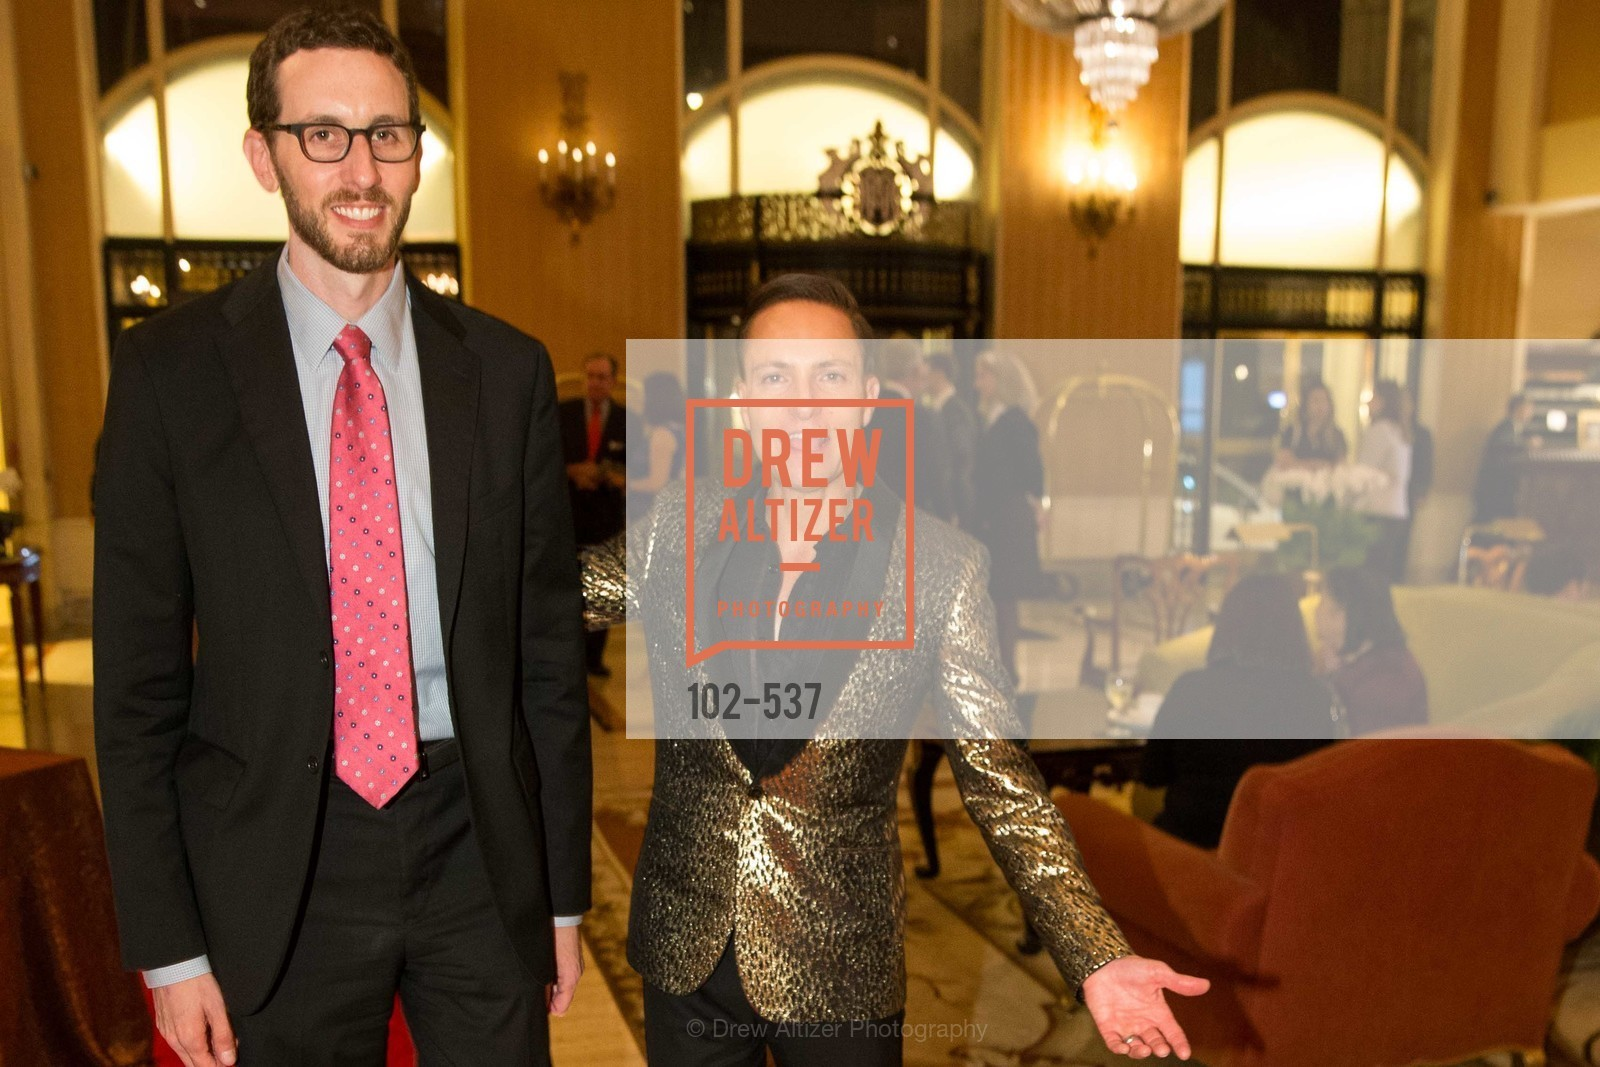 Scott Wiener, Ken Fulk, TOP OF THE MARK'S 75TH Anniversary Party, US, November 7th, 2014,Drew Altizer, Drew Altizer Photography, full-service agency, private events, San Francisco photographer, photographer california